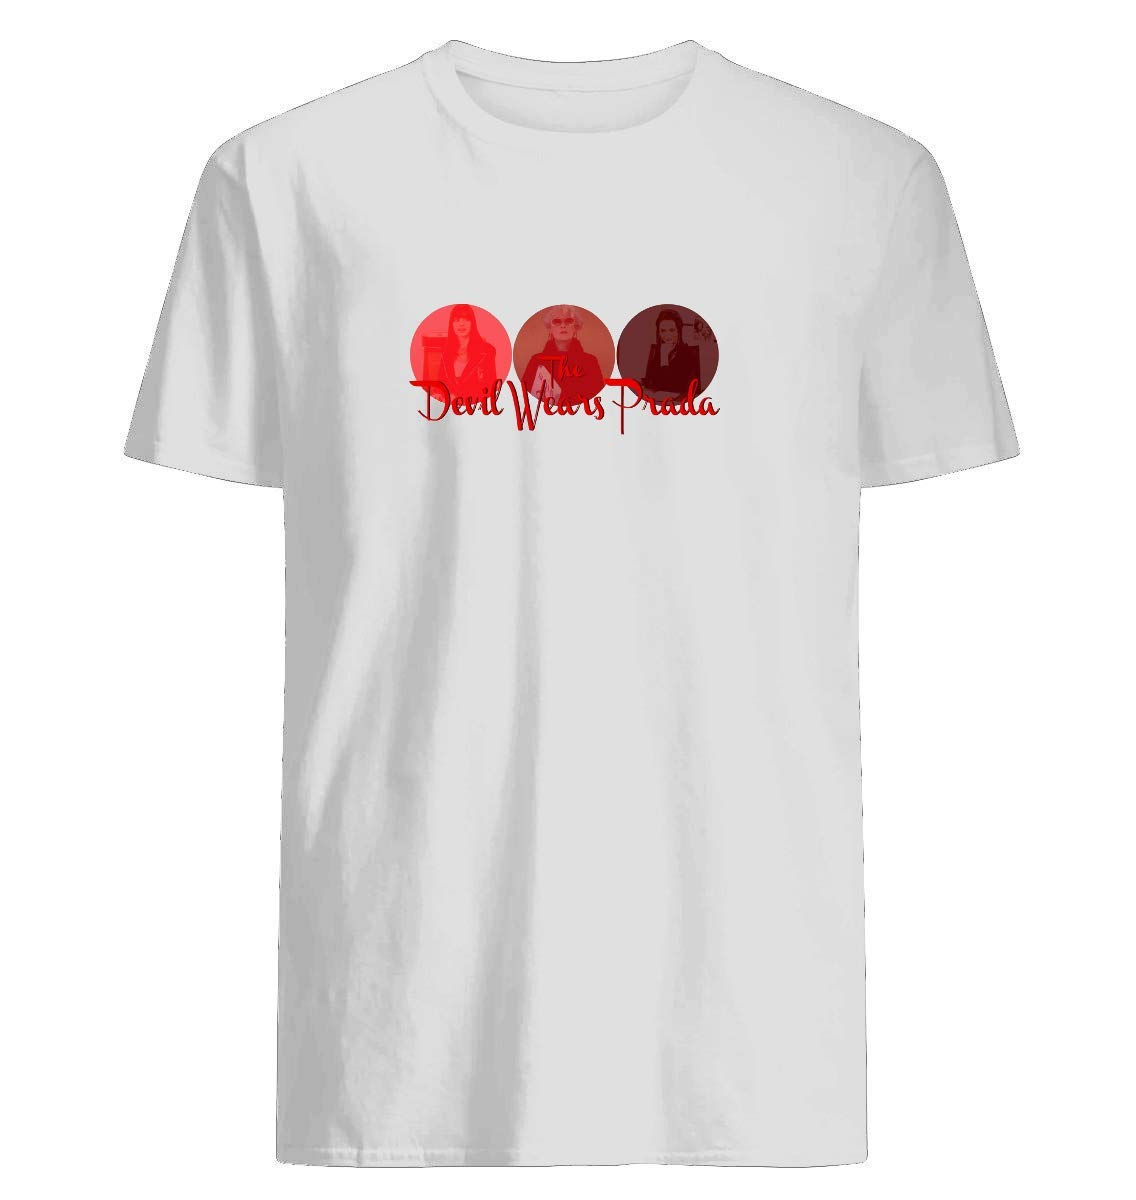 The Devil Wears Prada Logo T Shirt Consistent With The And Great Feeling